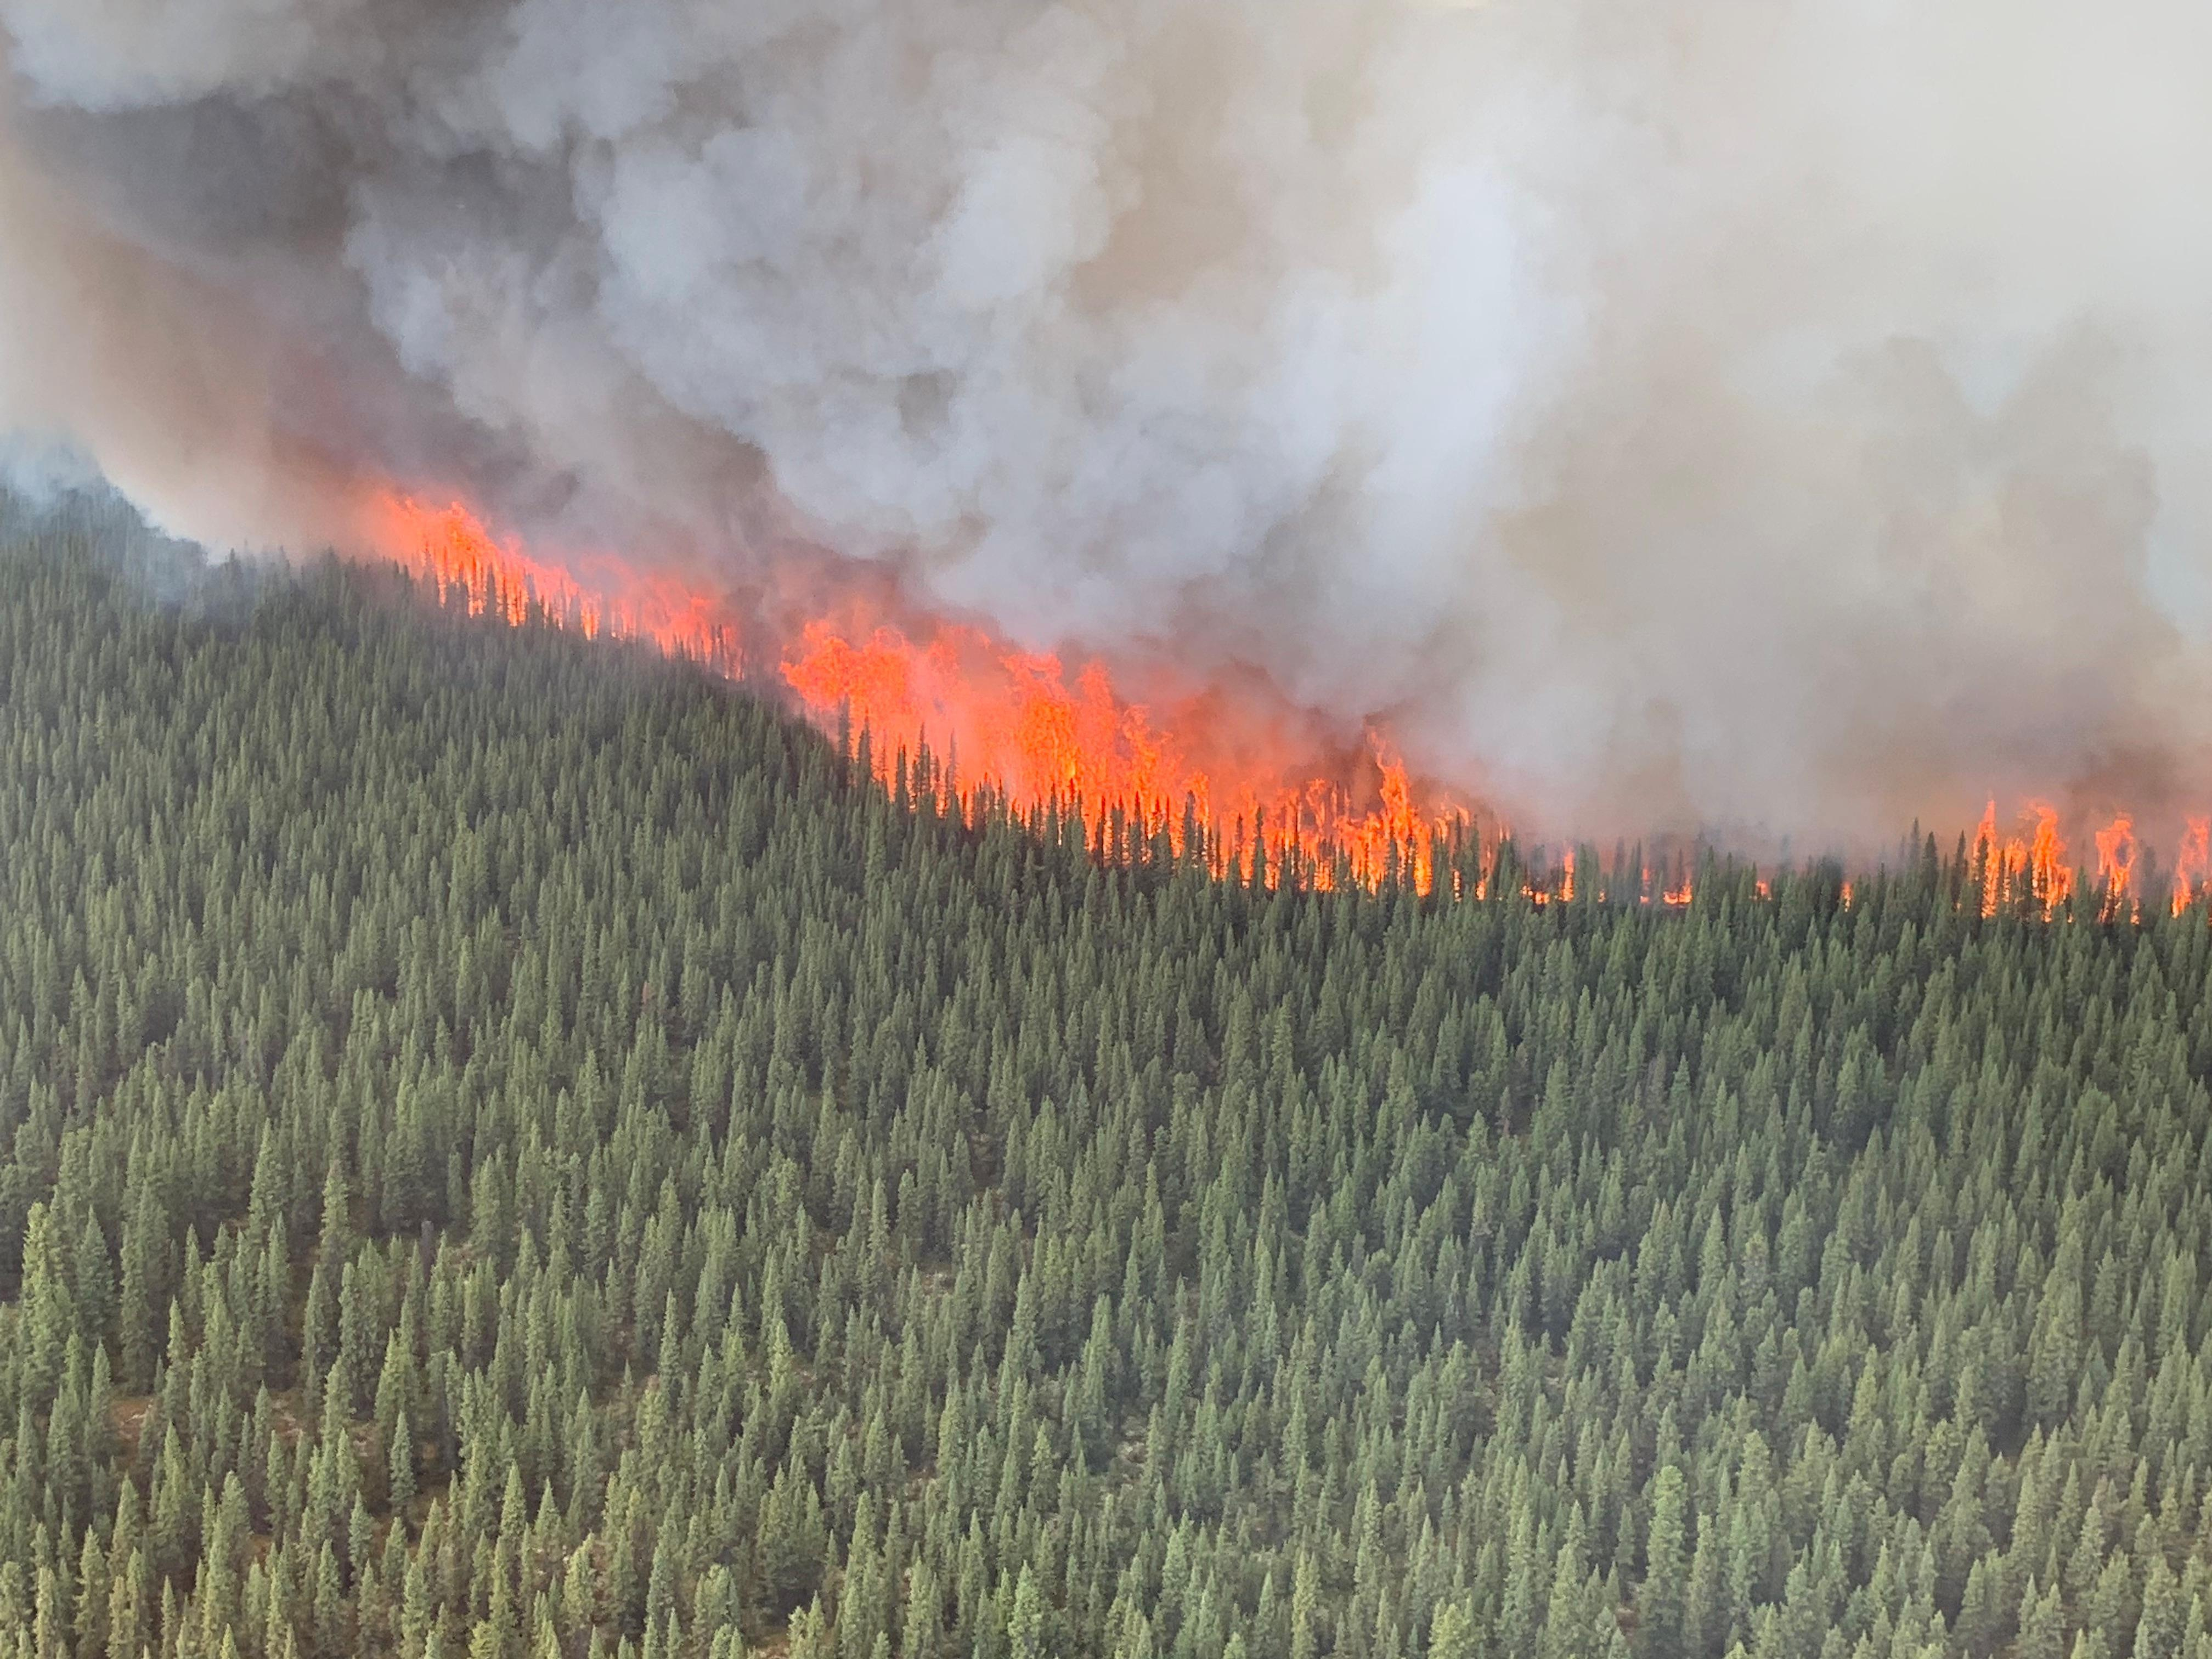 Swan Lake Fire Burning in Black Spruce Forest